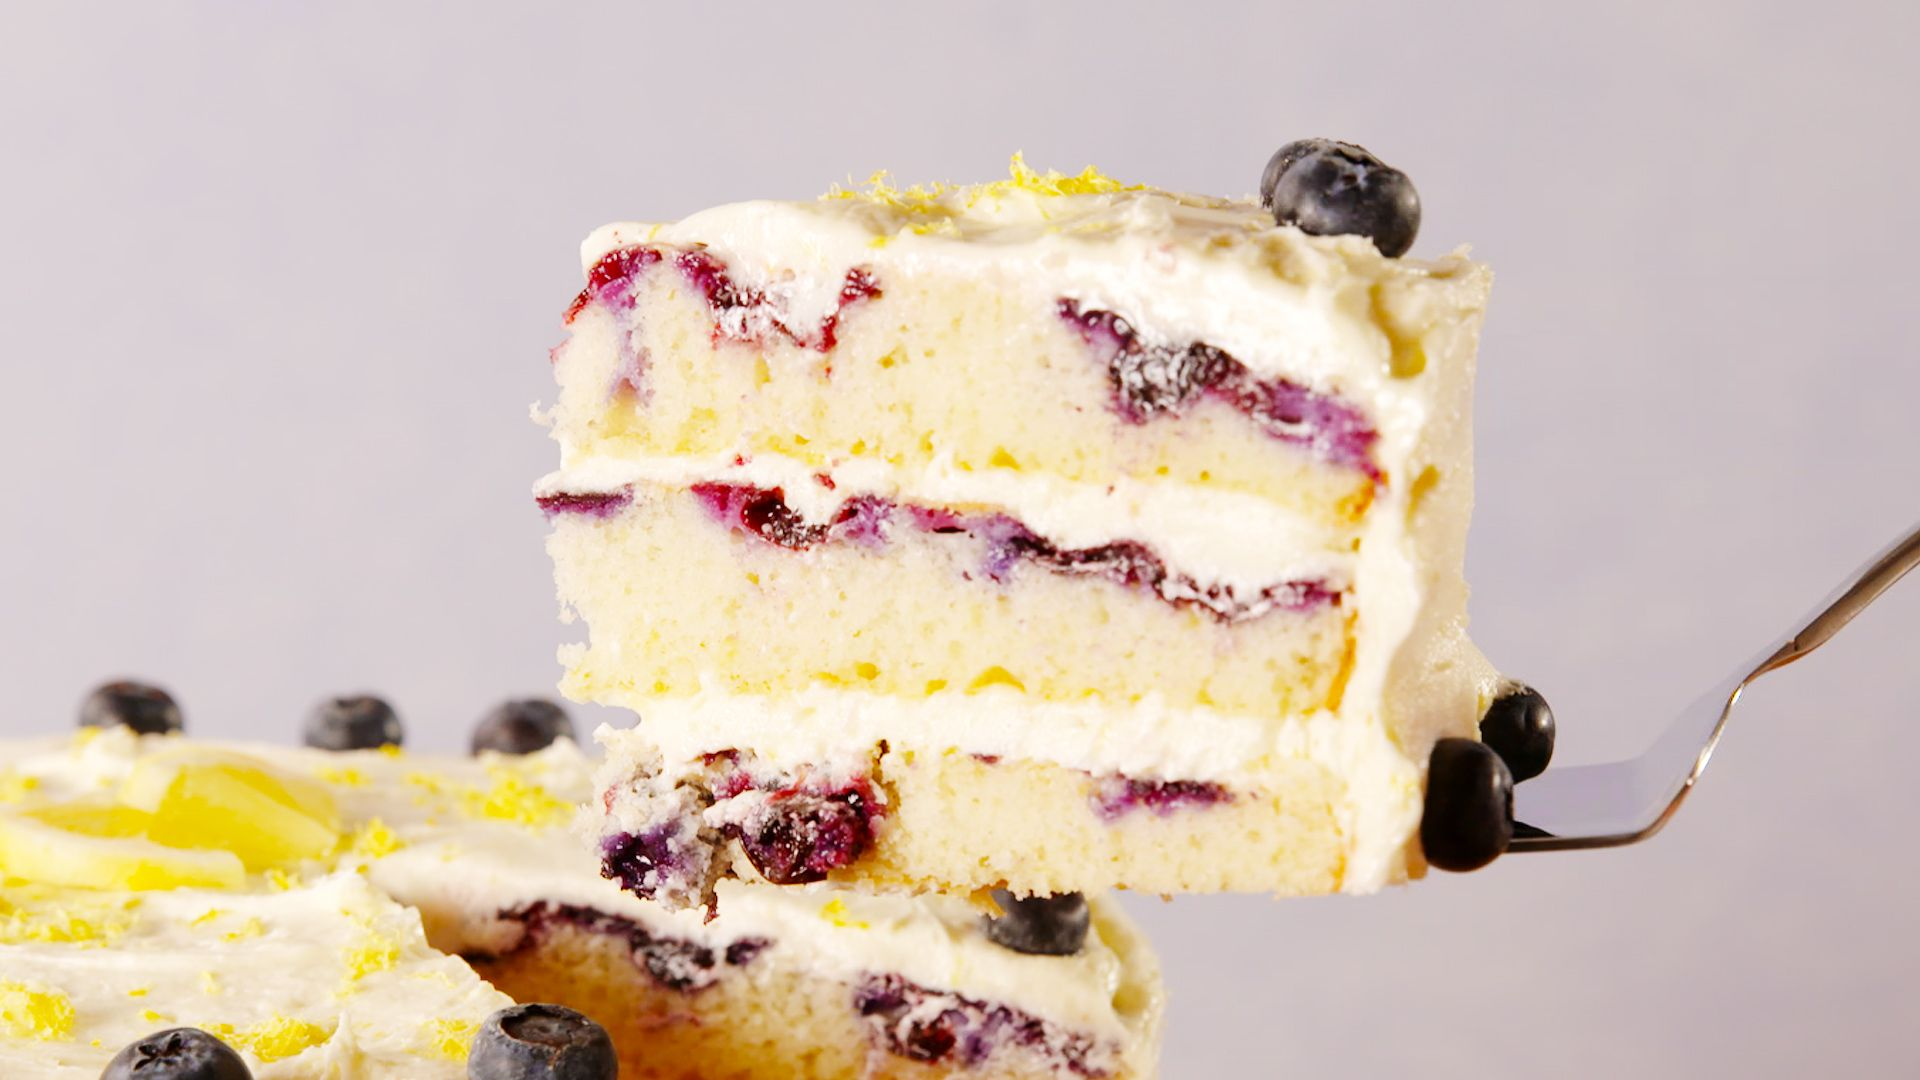 Blueberry Cake Using Cake Mix